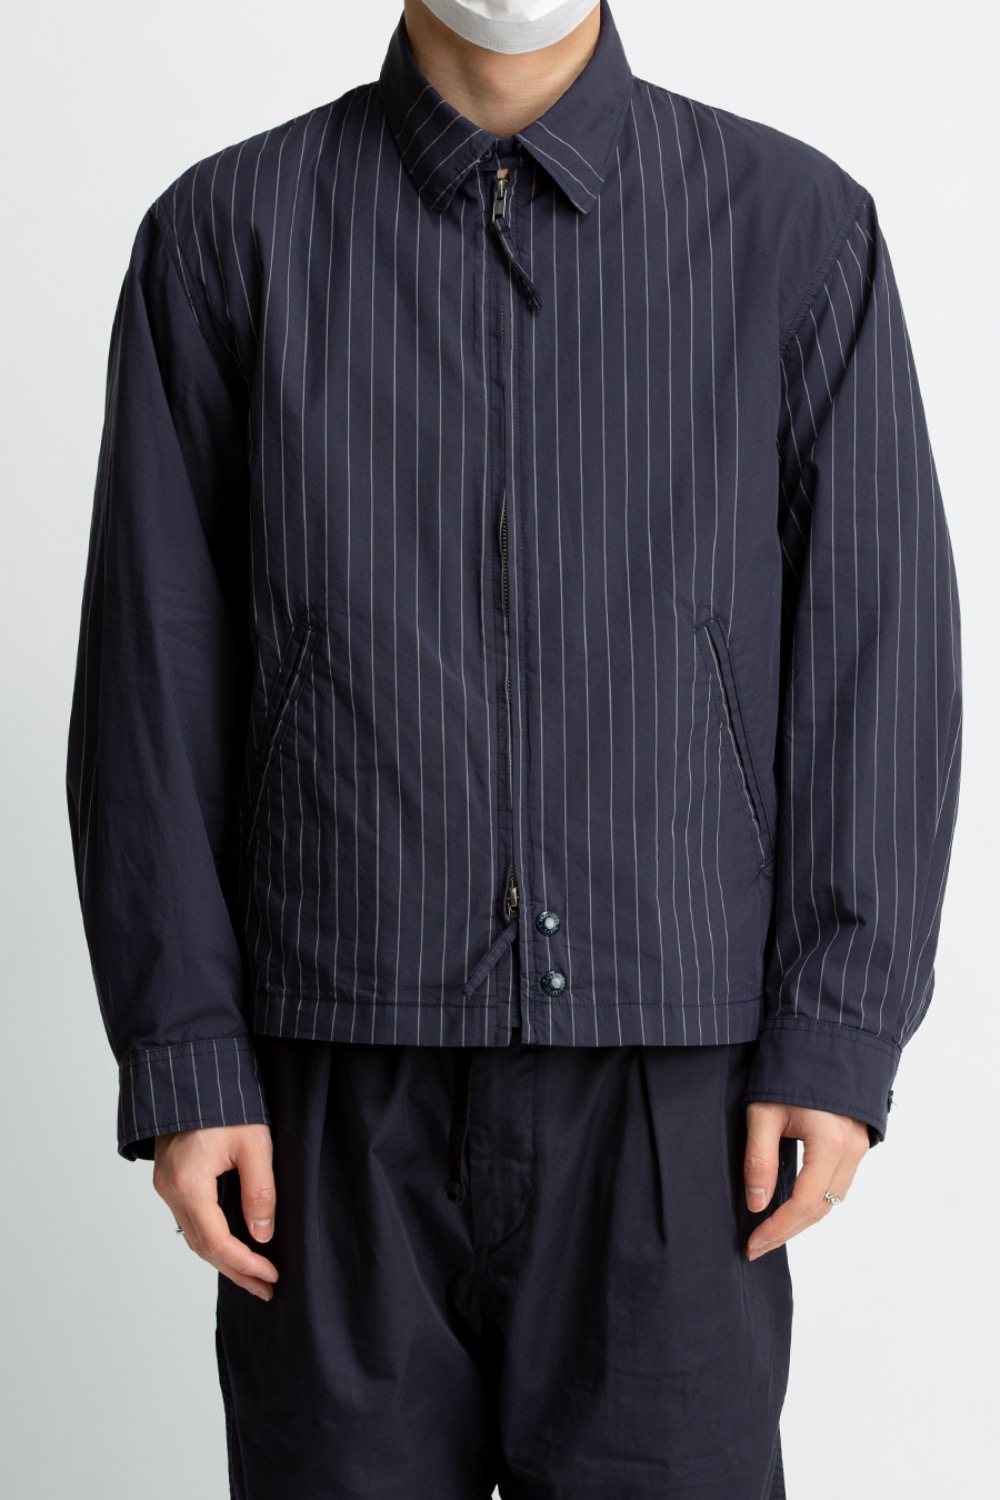 CLAIGTON JACKET DK.NAVY NYCO GANGSTER STRIPE